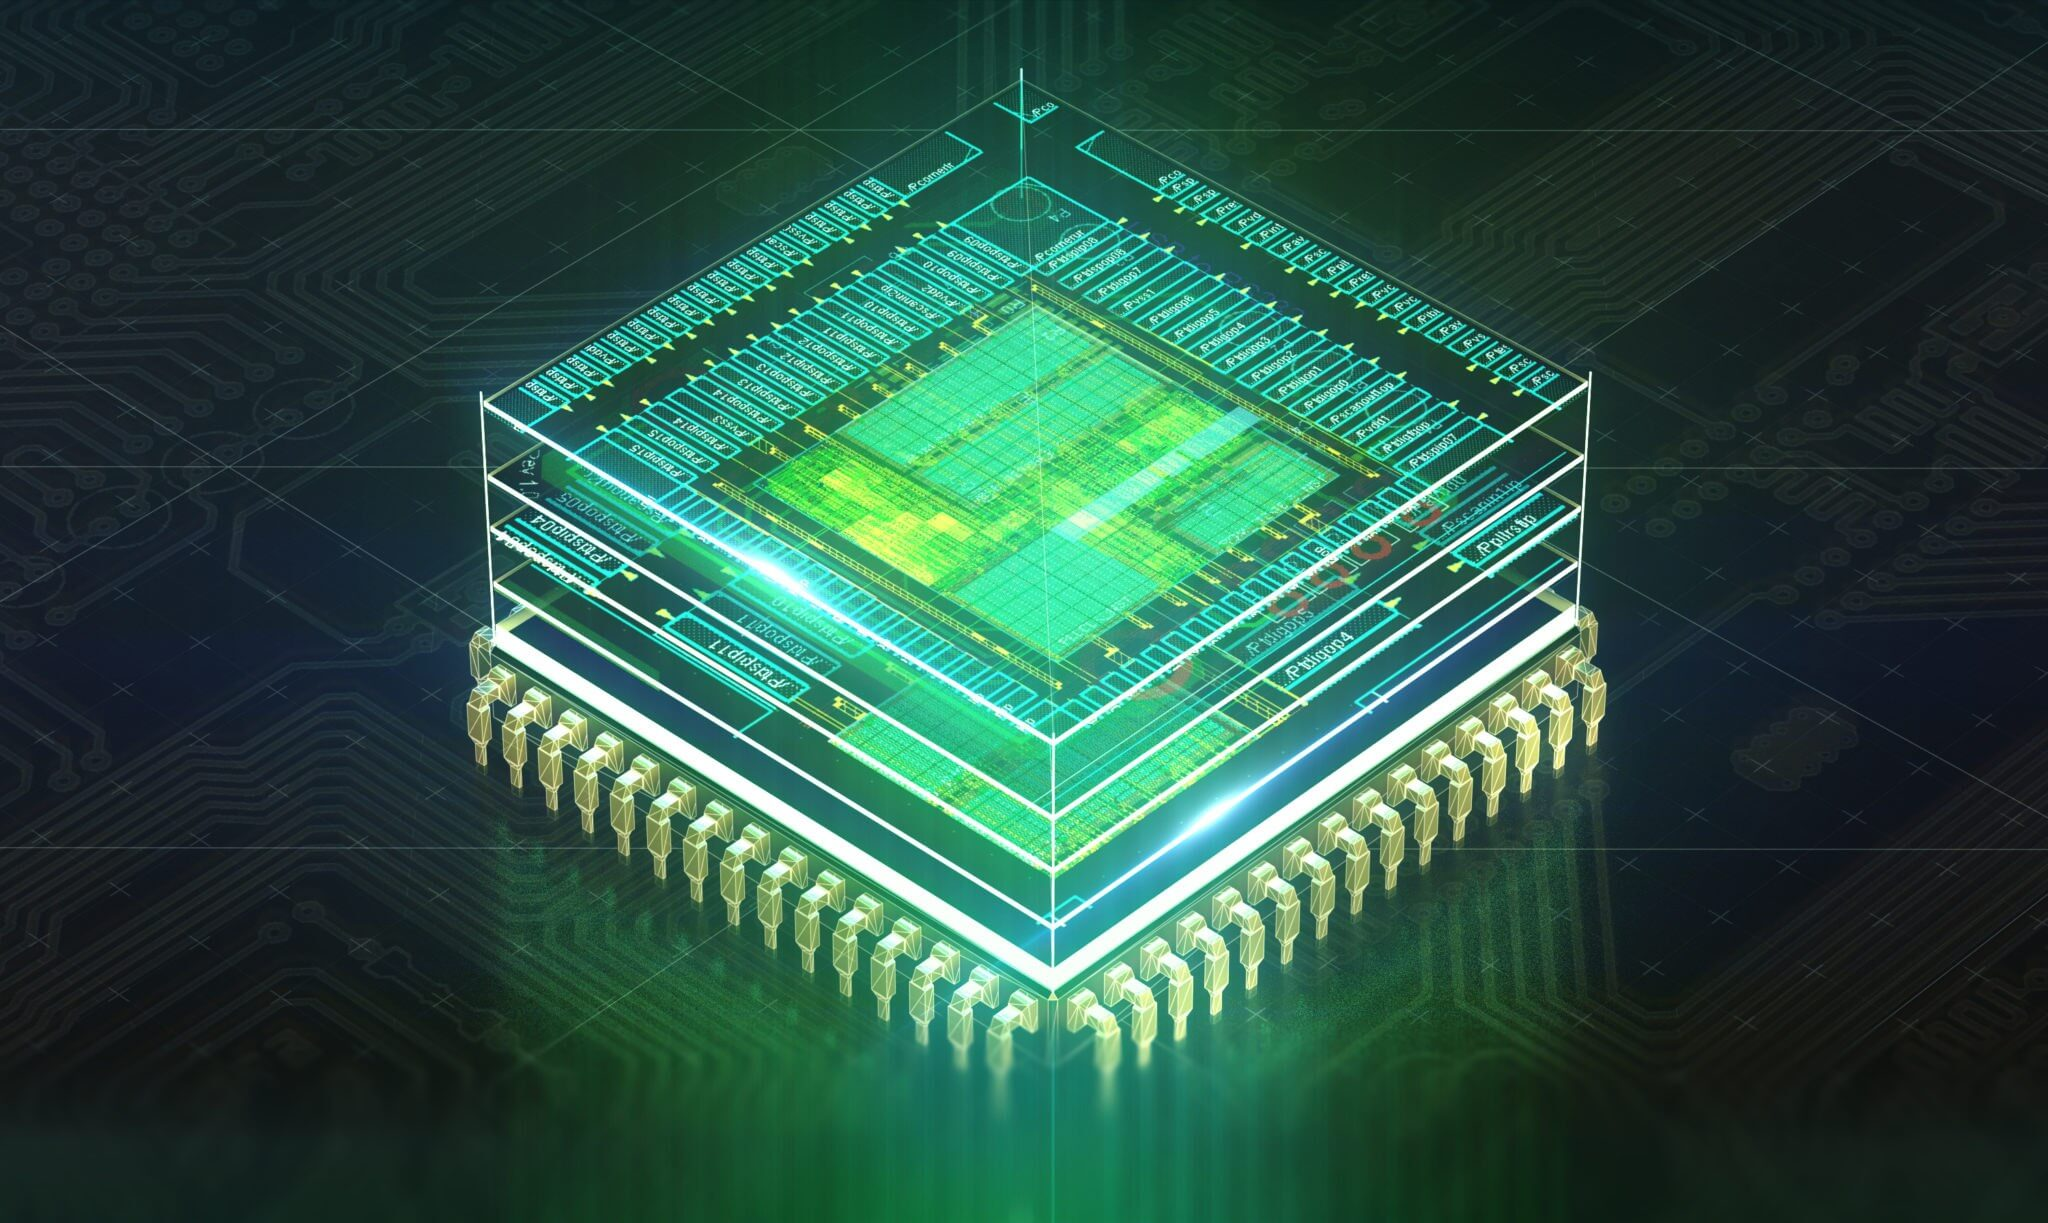 Intel envisions MESO logic devices superseding CMOS tech in ten years